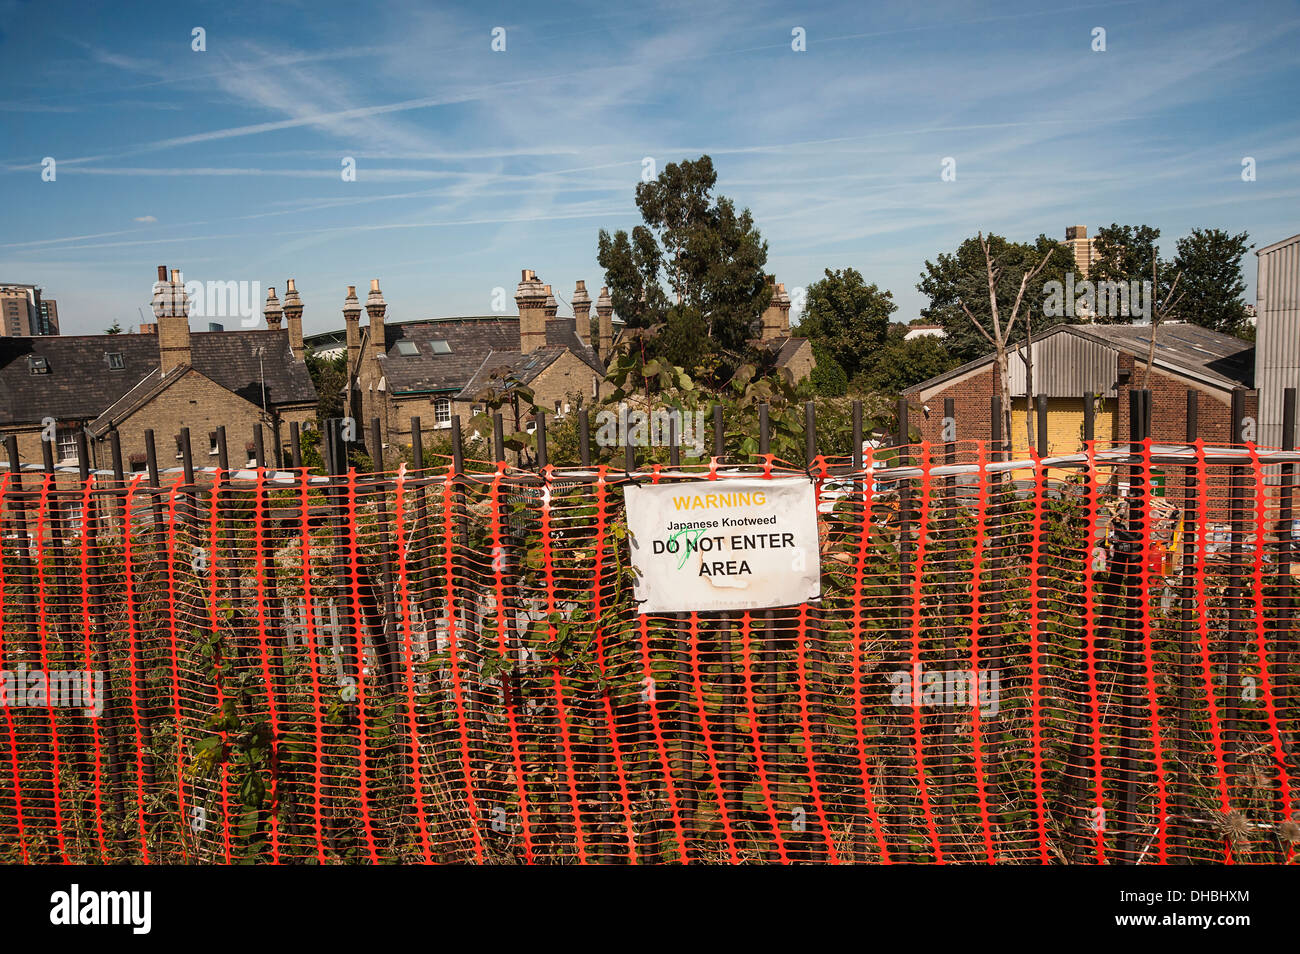 Japanese knotweed, Fallopia japonica behind a red plastice barier fence saying 'Do not Enter' in an East London suburb. - Stock Image